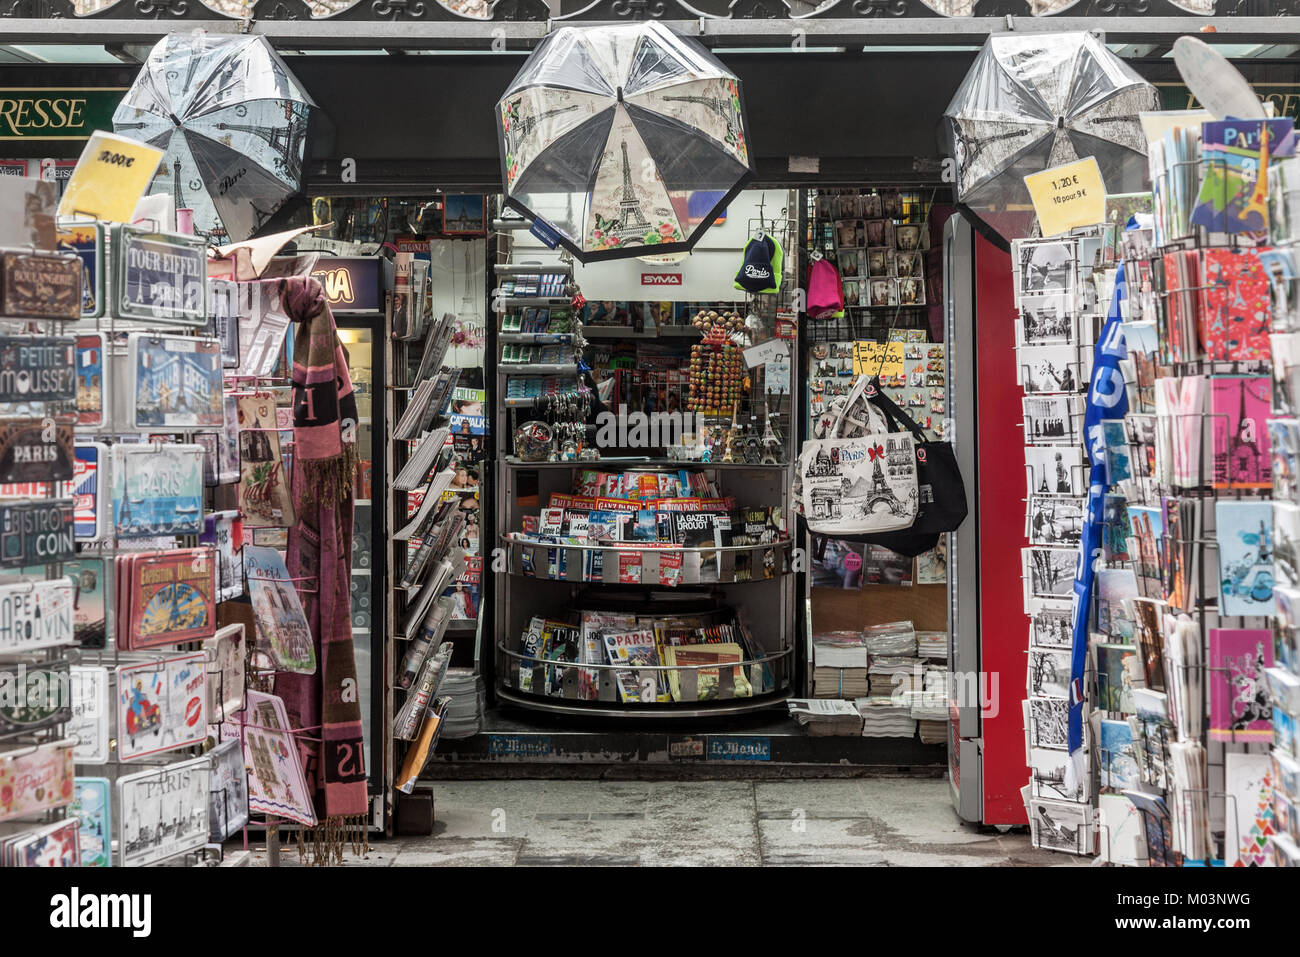 PARIS, FRANCE - DECEMBER 20, 2017: Souvenir Shop on the Paris avenue of Champs Elysees, in a kiosk, displaying various - Stock Image